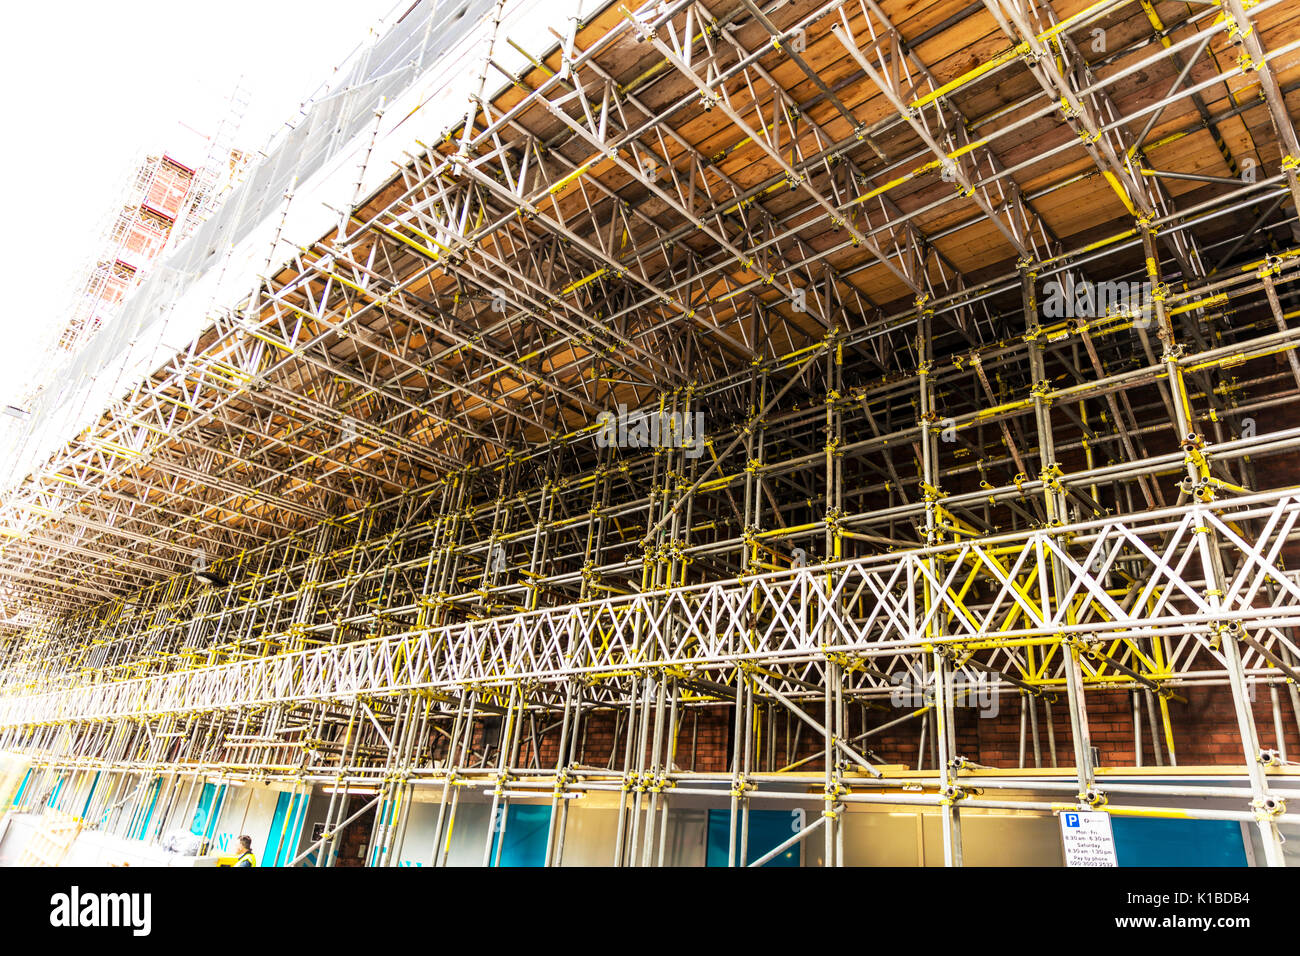 Scaffold, scaffolding, scaffolded, building, construction, construction scaffold, dungeons, building scaffold, Scaffold UK England, health and safety, - Stock Image